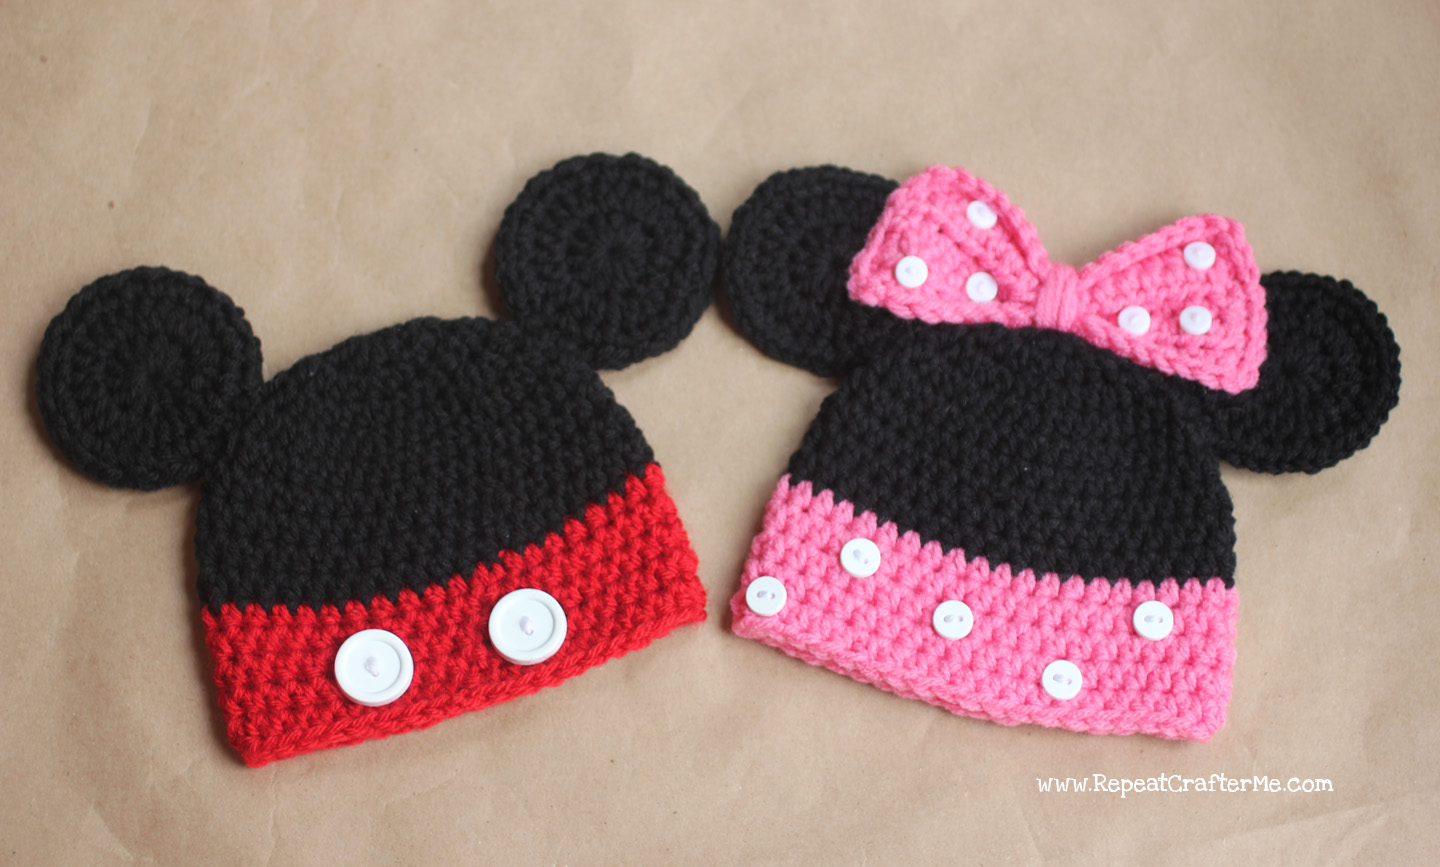 Crochet Patterns Hats : ... crochet hats! I am sharing the pattern for newborn size, but will give